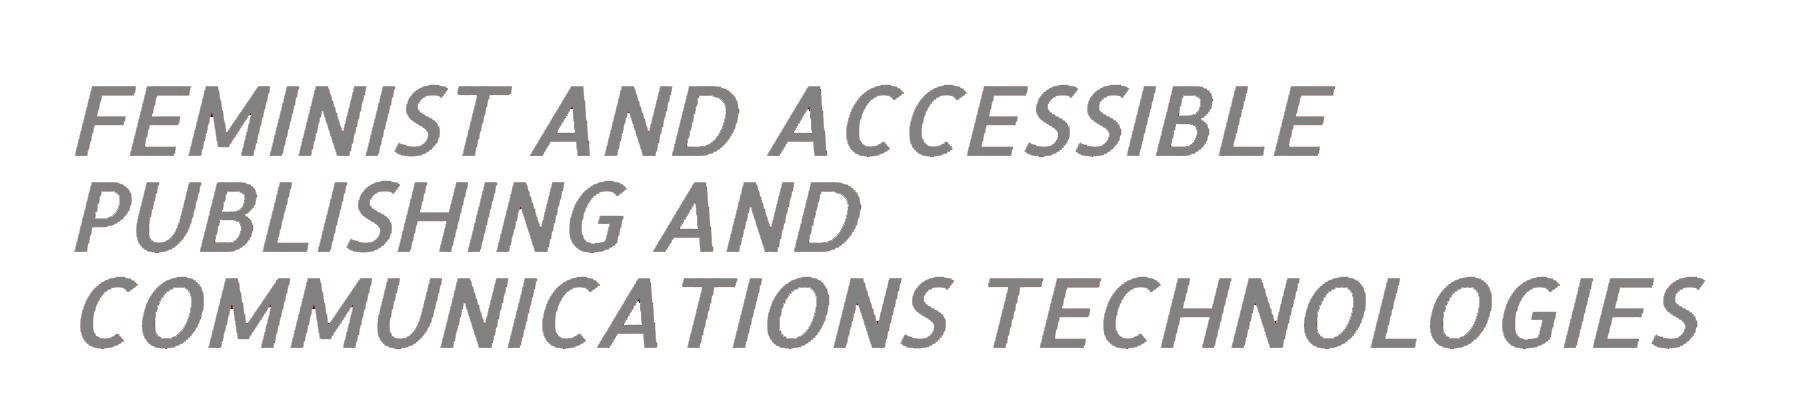 Feminist and Accessible Publishing, Communications, and Technologies